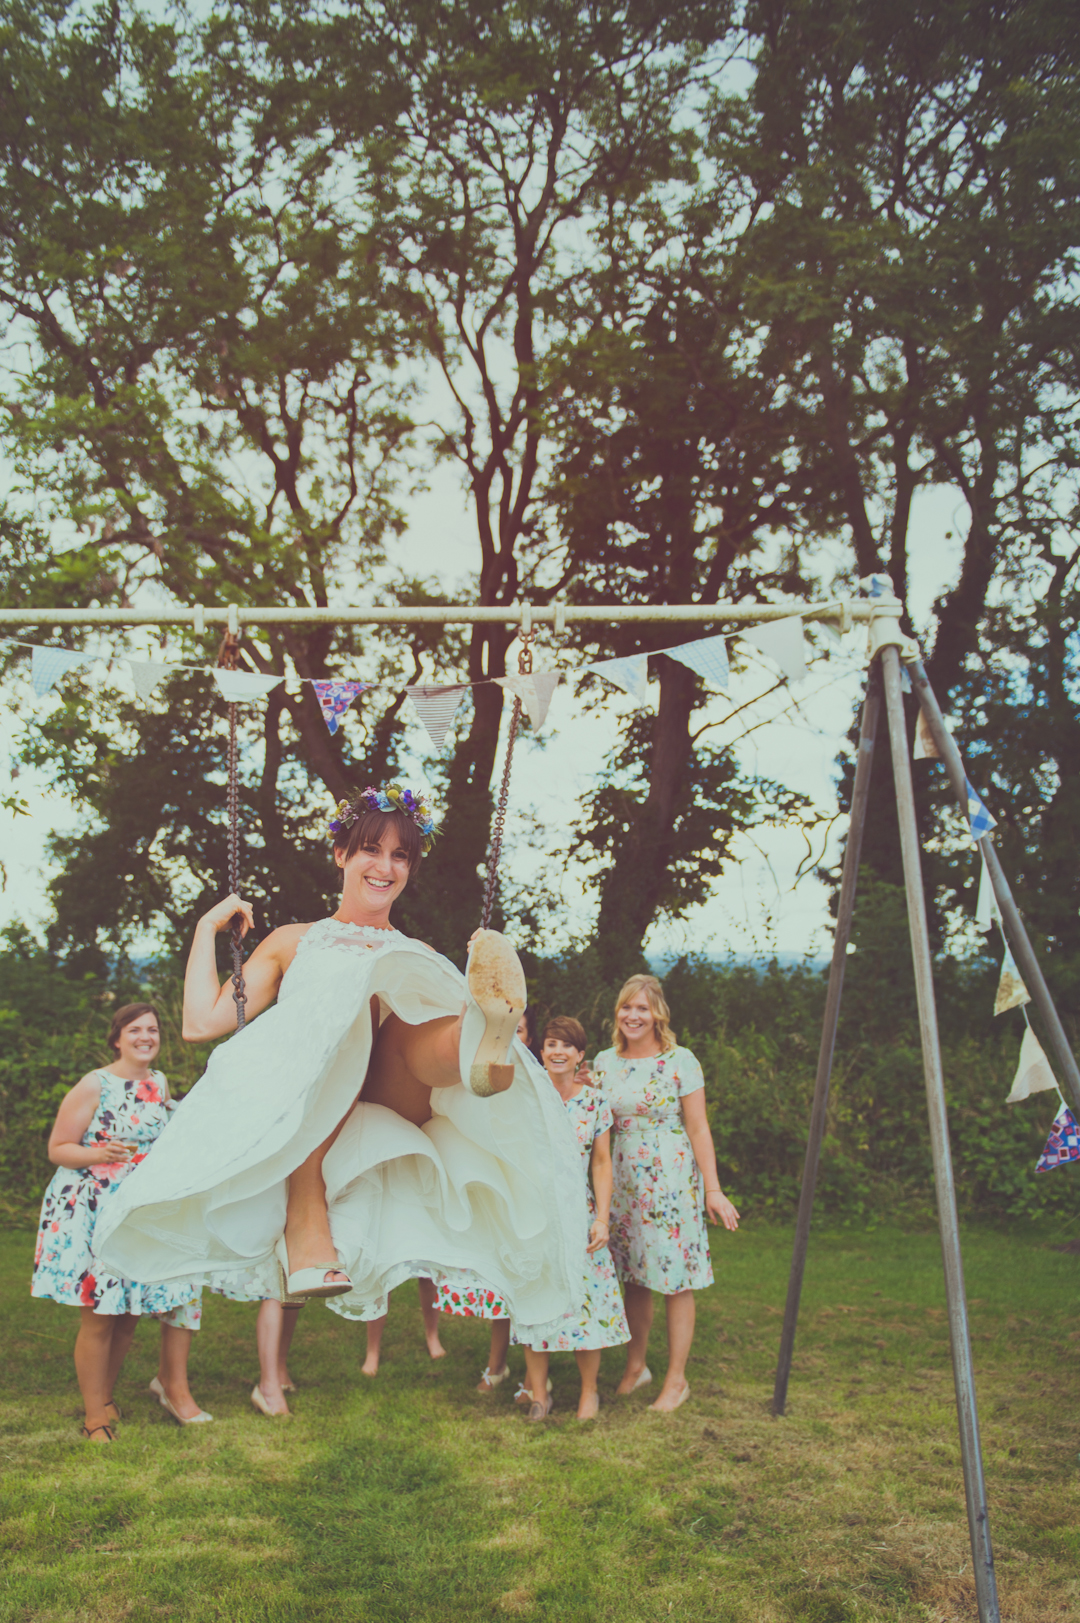 festival-bride-on-swing-vicky-and-james-wedfest